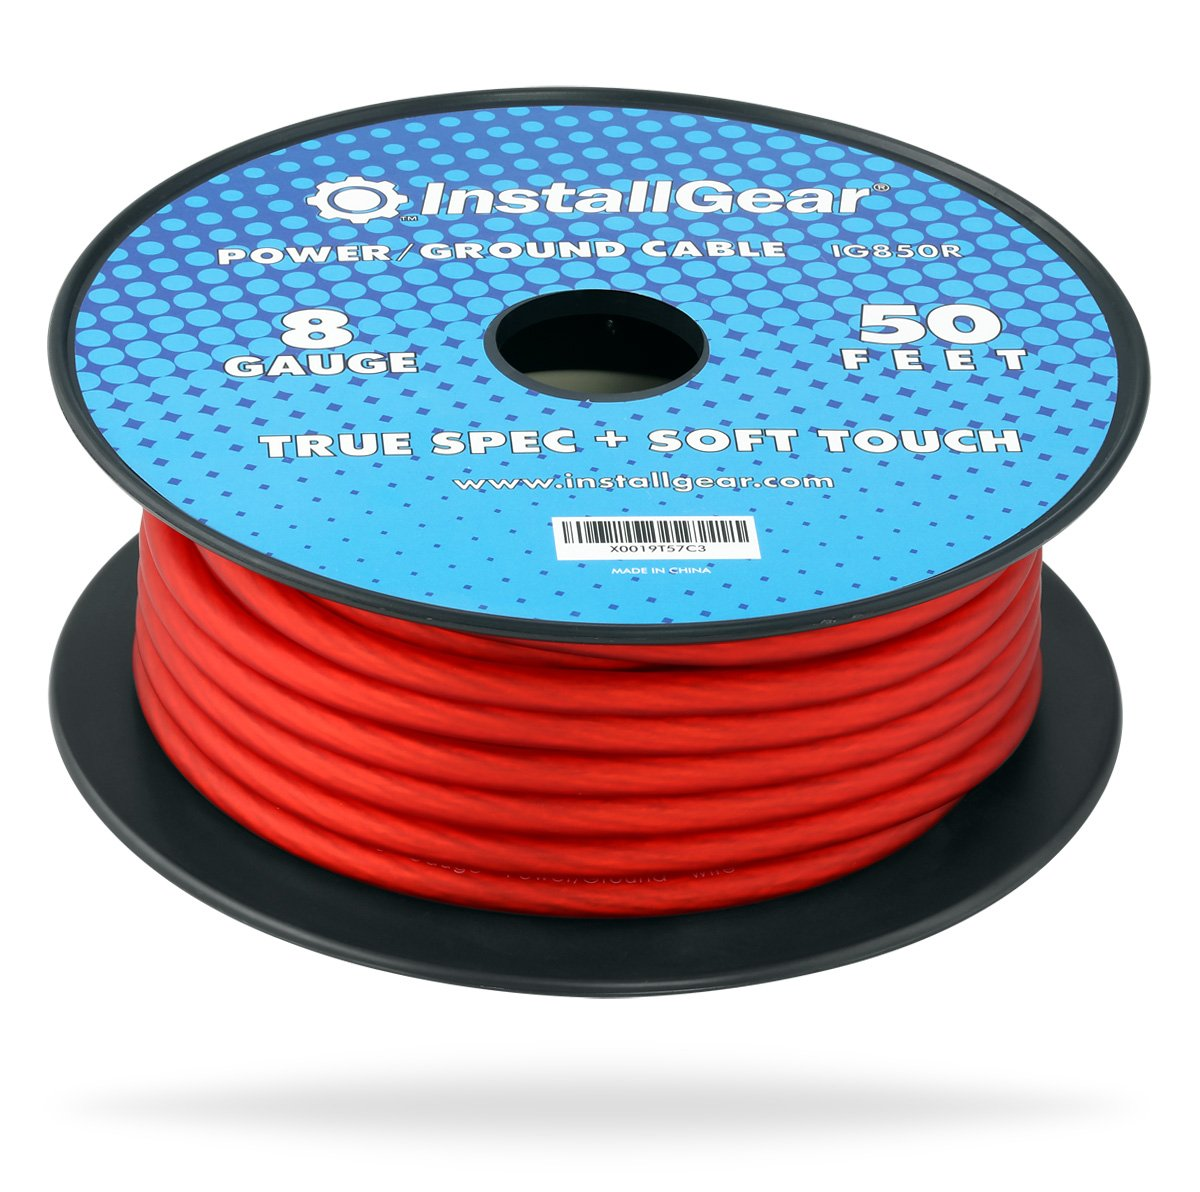 Amazon.com: InstallGear 8 Gauge Black 50ft Power/Ground Wire True ...